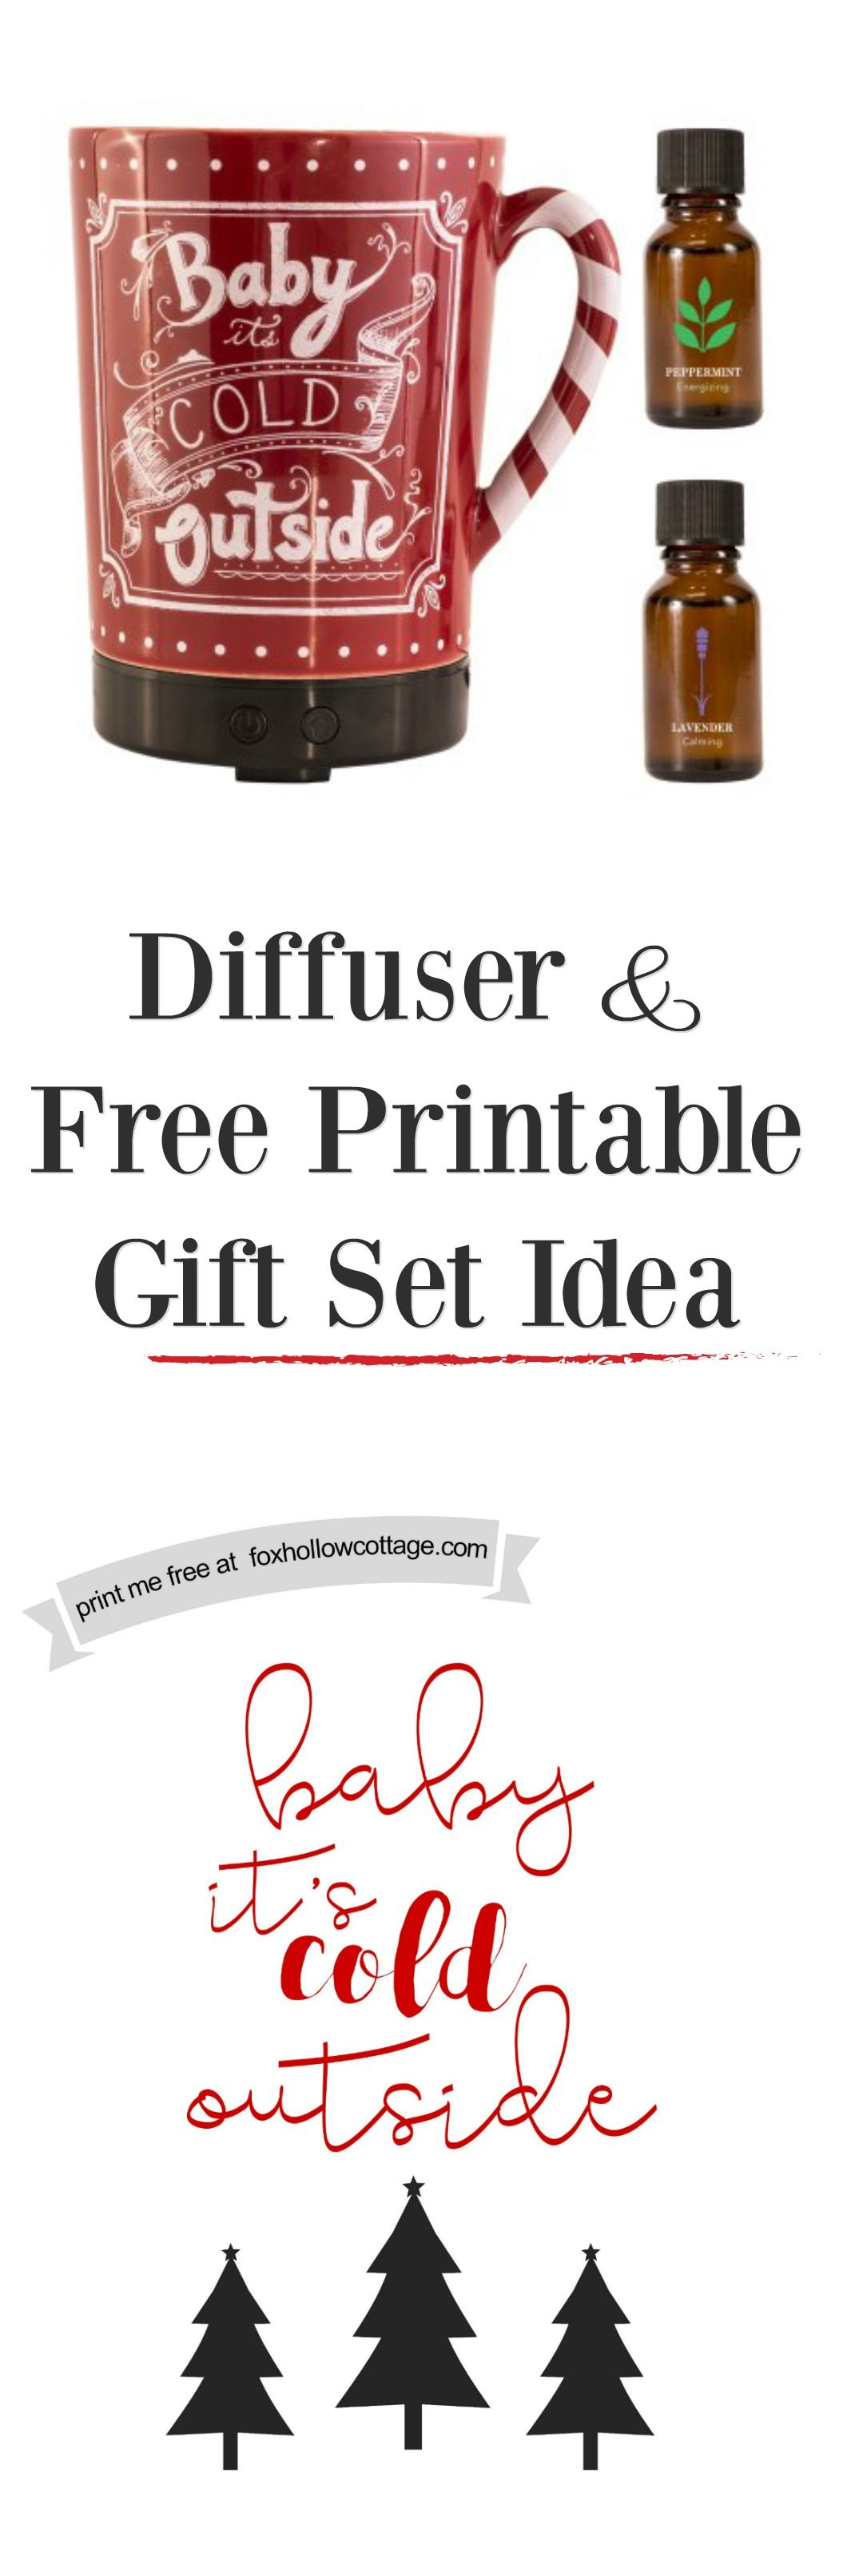 Affordable Christmas Gift Ideas That Are So Cute | Aroma diffuser ...